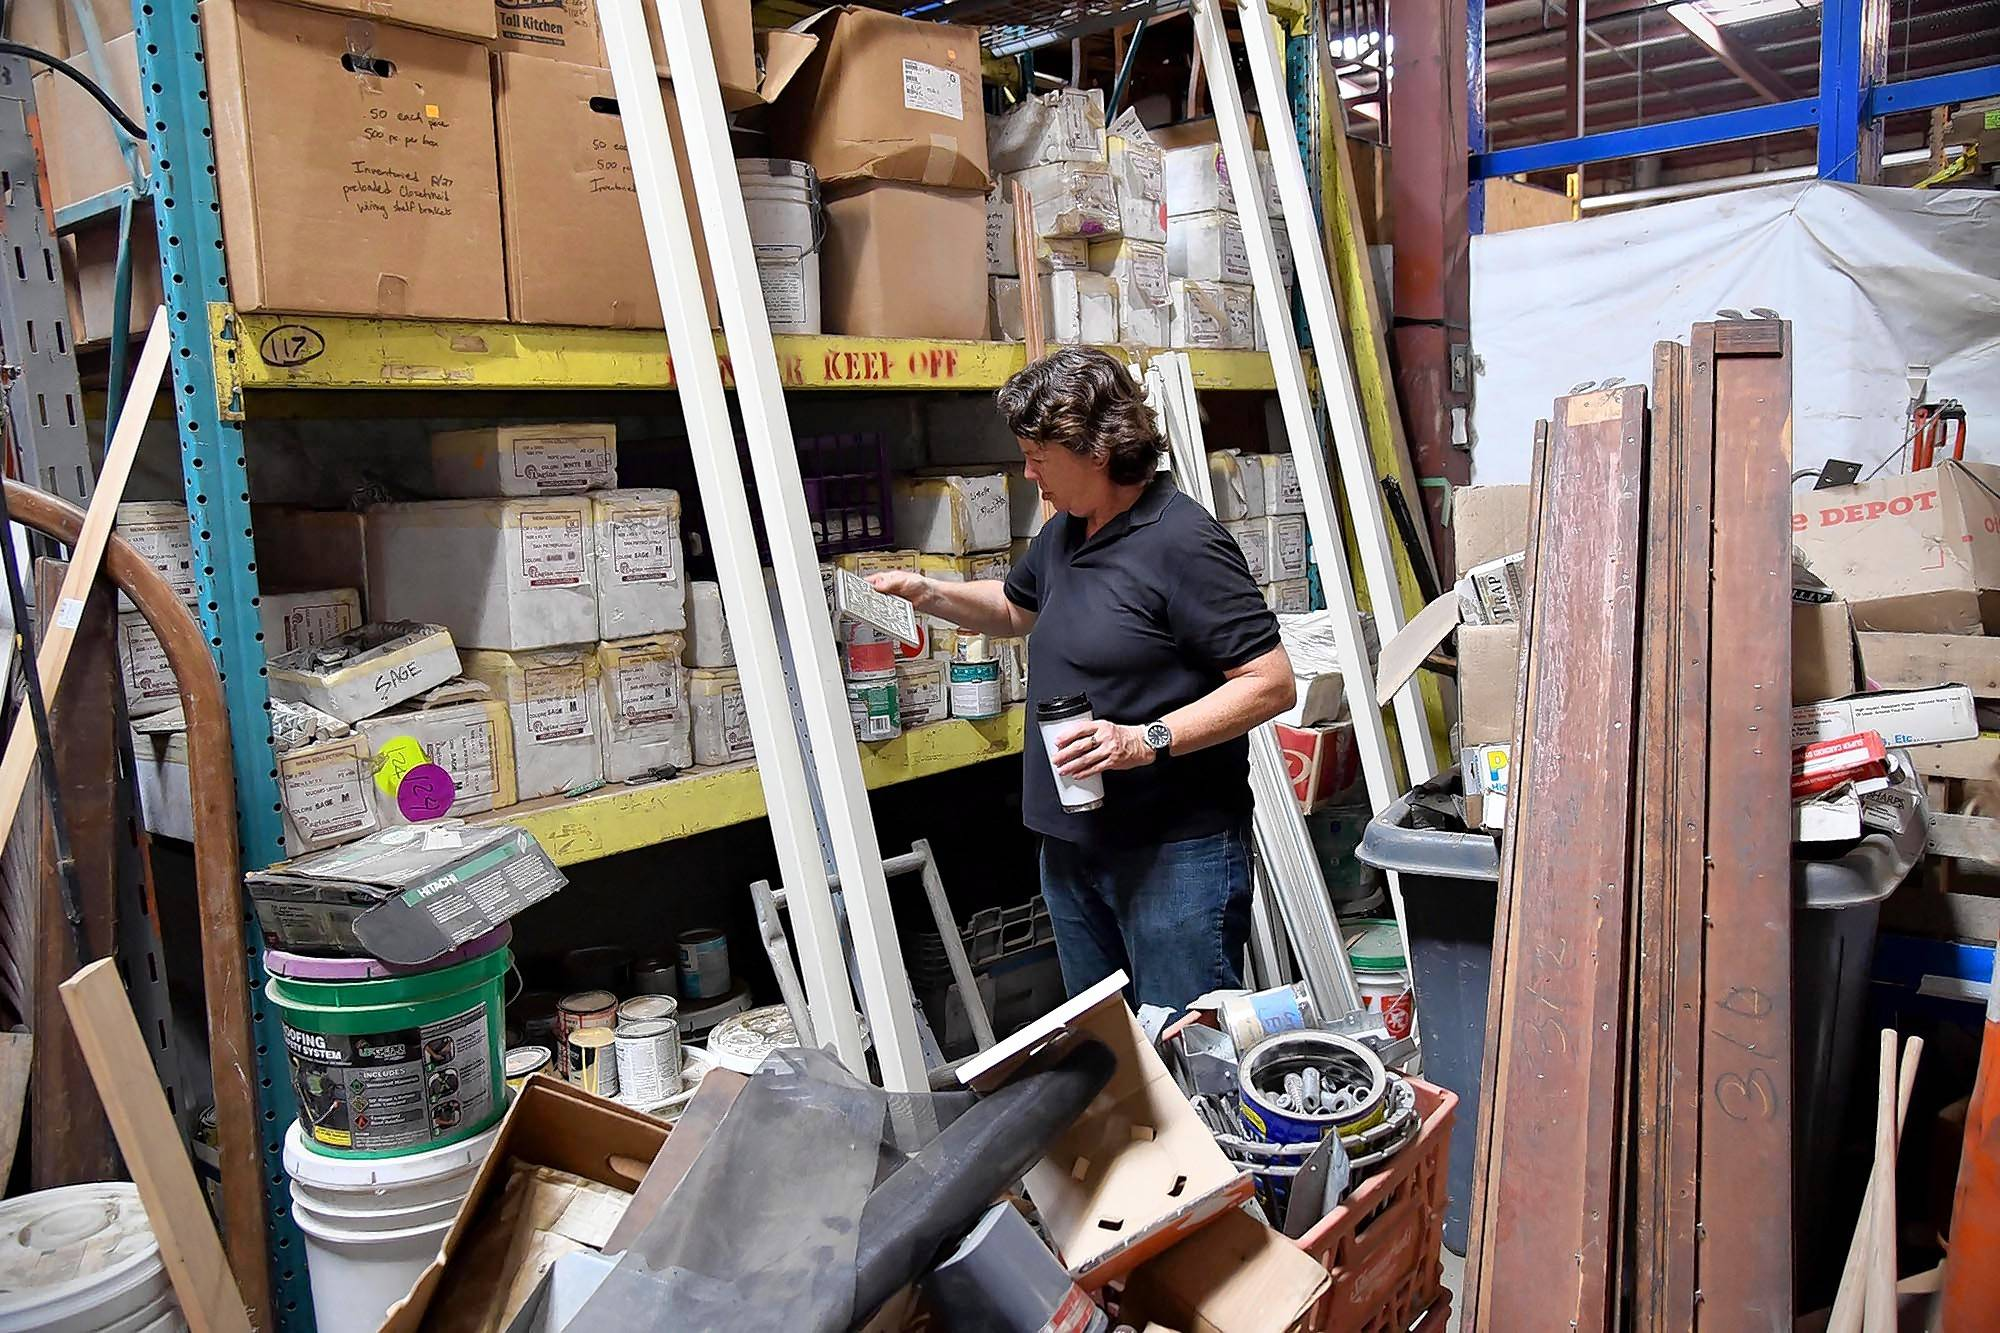 Nancy Meyer finds boxes of expensive Italian tile on a shelf at Community Forklift.